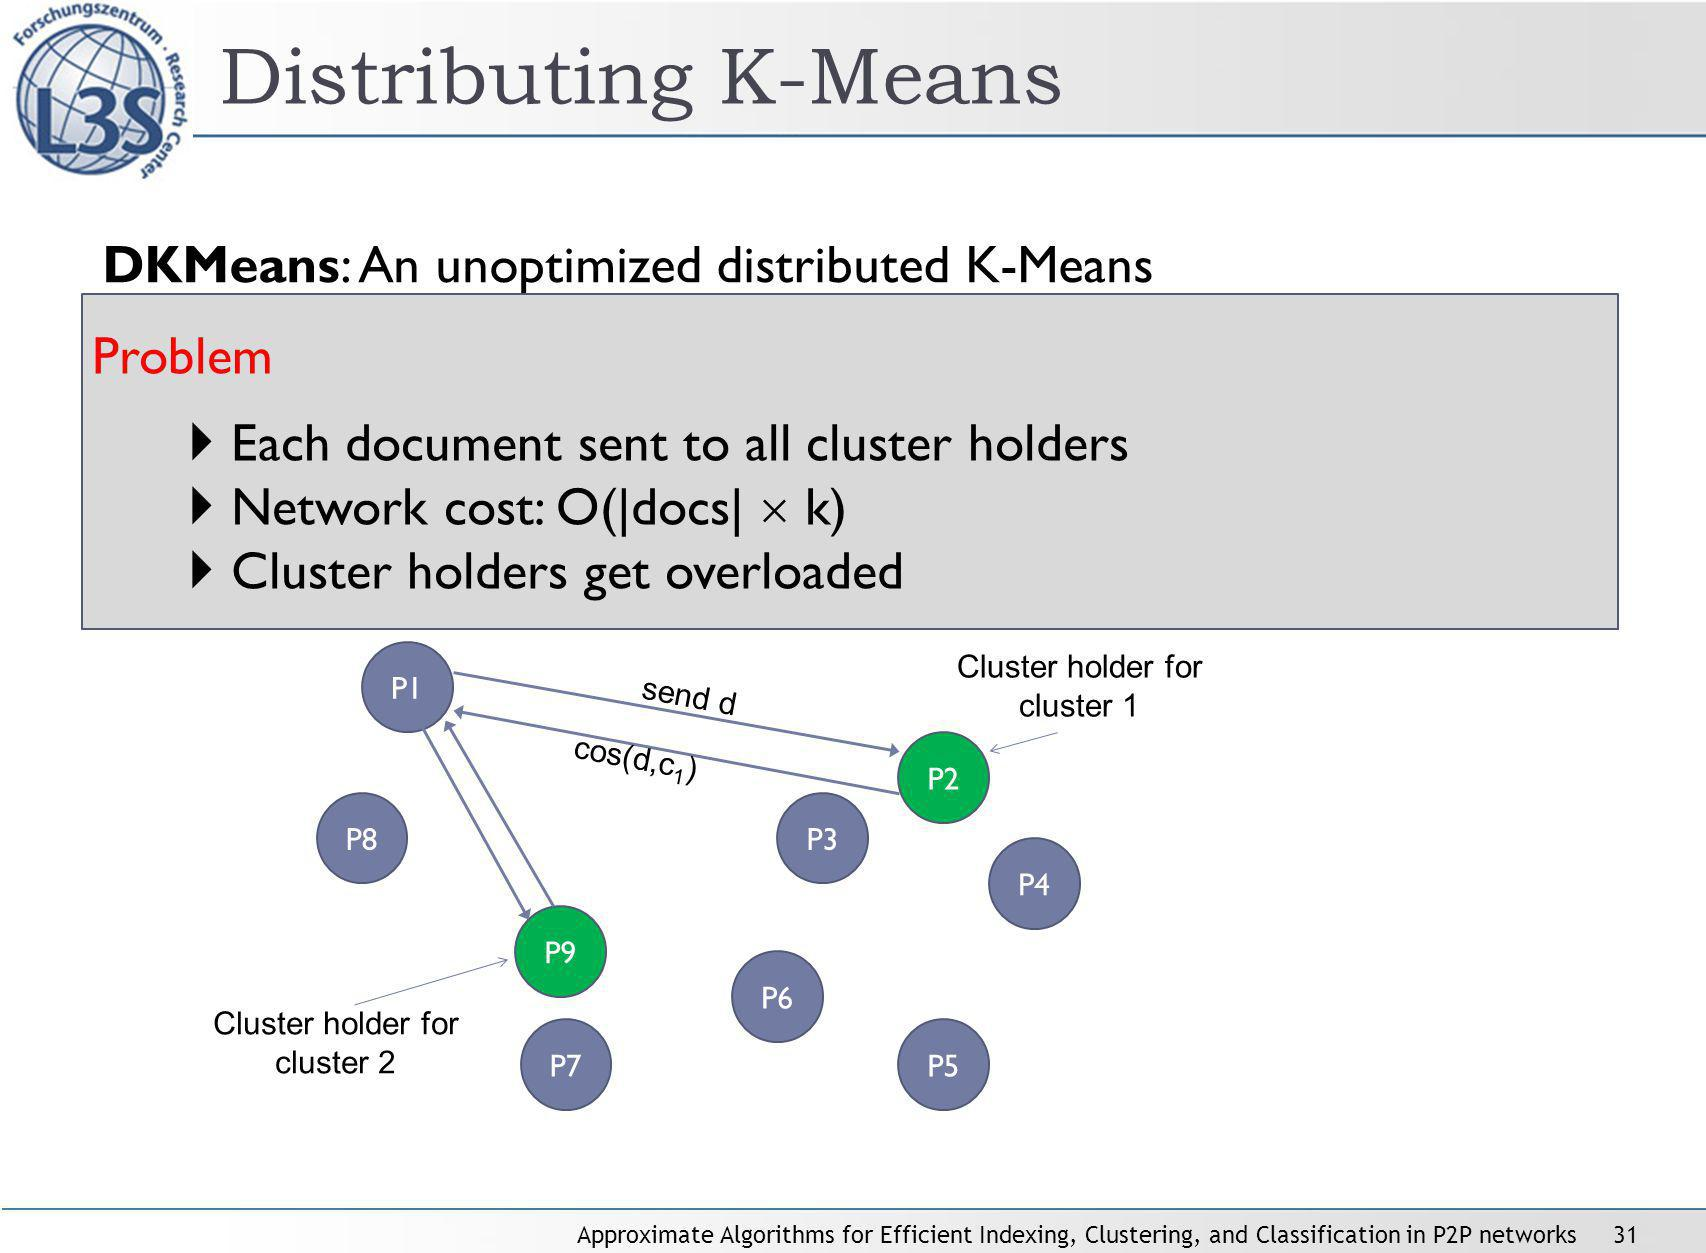 Approximate Algorithms for Efficient Indexing, Clustering, and Classification in P2P networks31 Distributing K-Means DKMeans: An unoptimized distributed K-Means Assign maintenance of each cluster to one peer: Cluster holders Peer P1 wants to cluster its document d Send d to all cluster holders Cluster holders compute cosine(d,c) P1 assigns d to cluster with max.